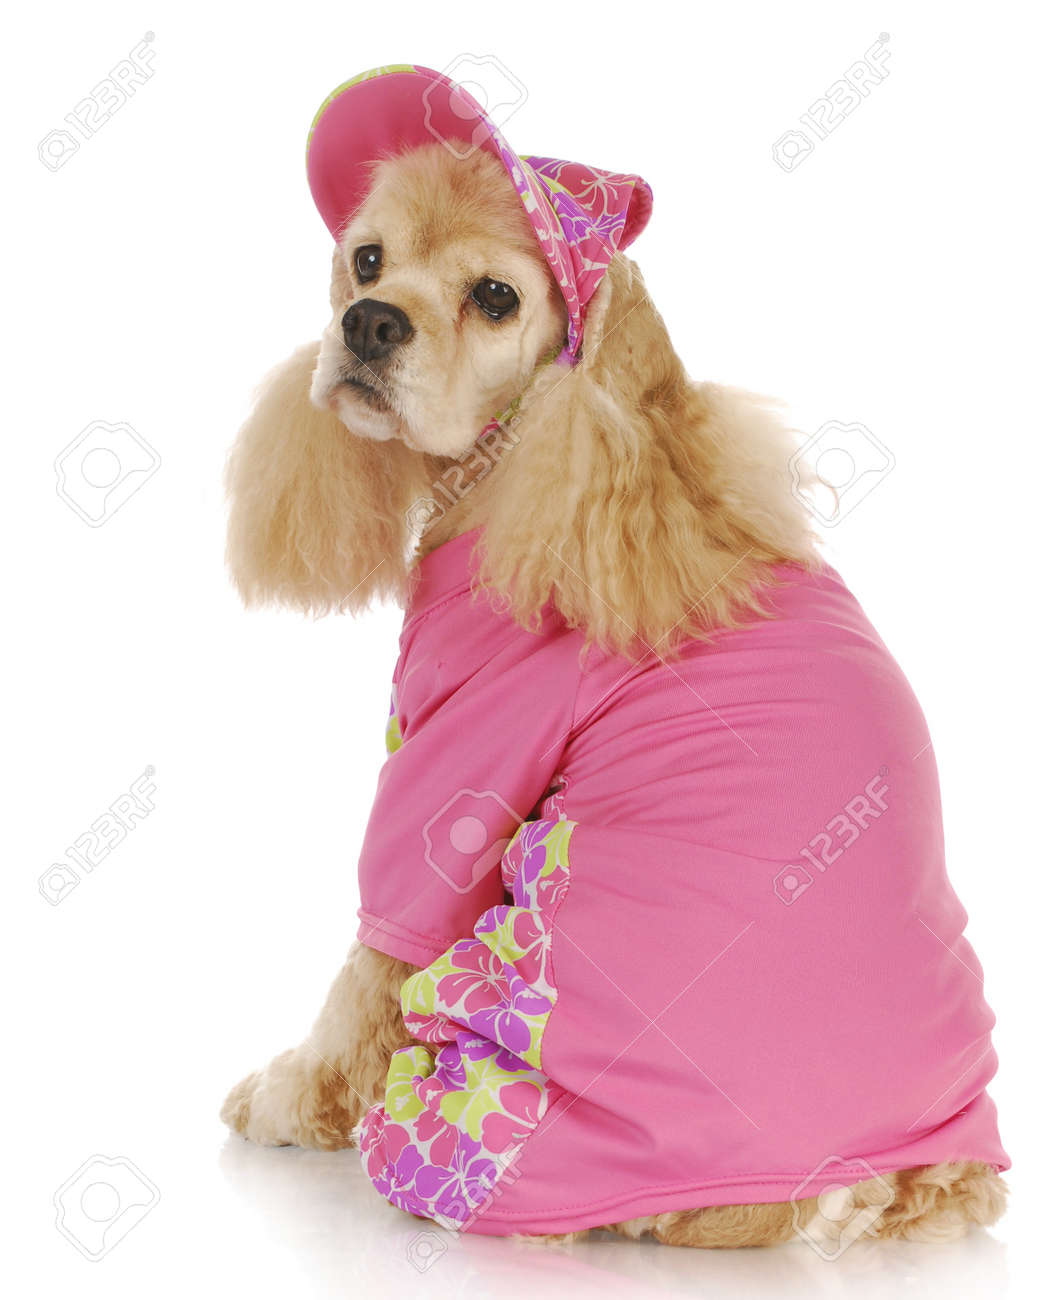 female dog - cute cocker spaniel wearing pink hat and shirt - 9 years old Stock Photo - 9515559